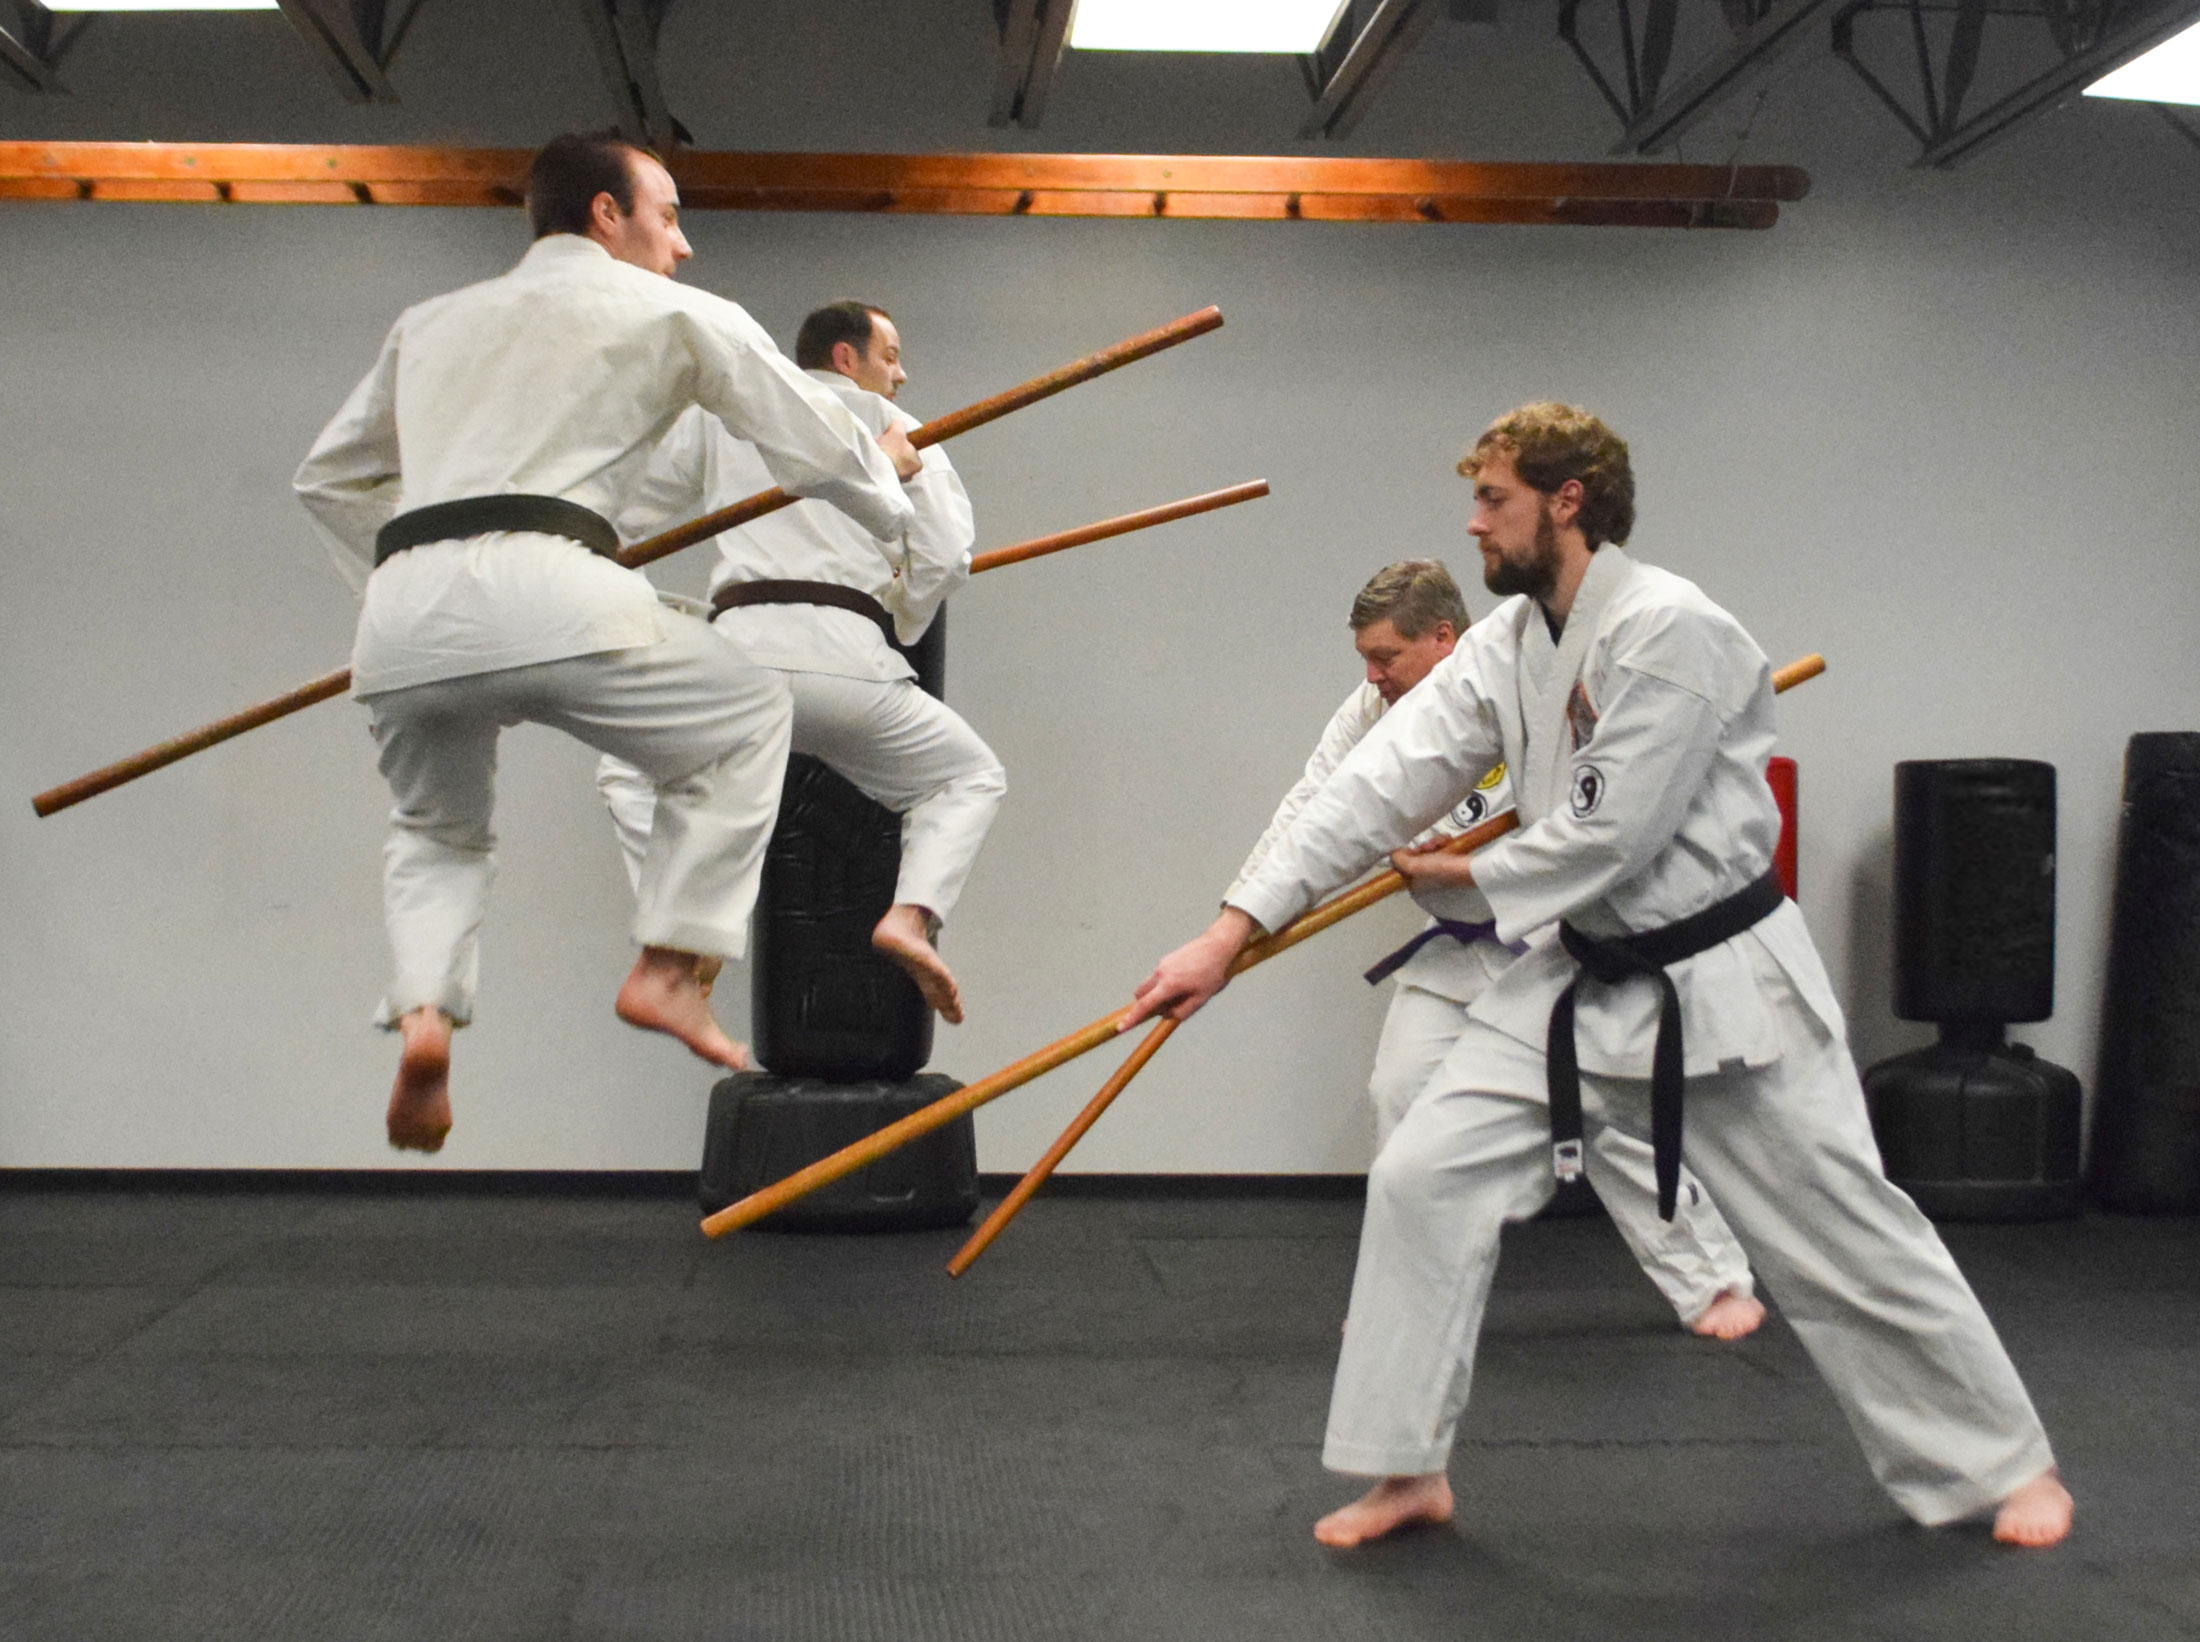 Men in the adult class practicing with bows